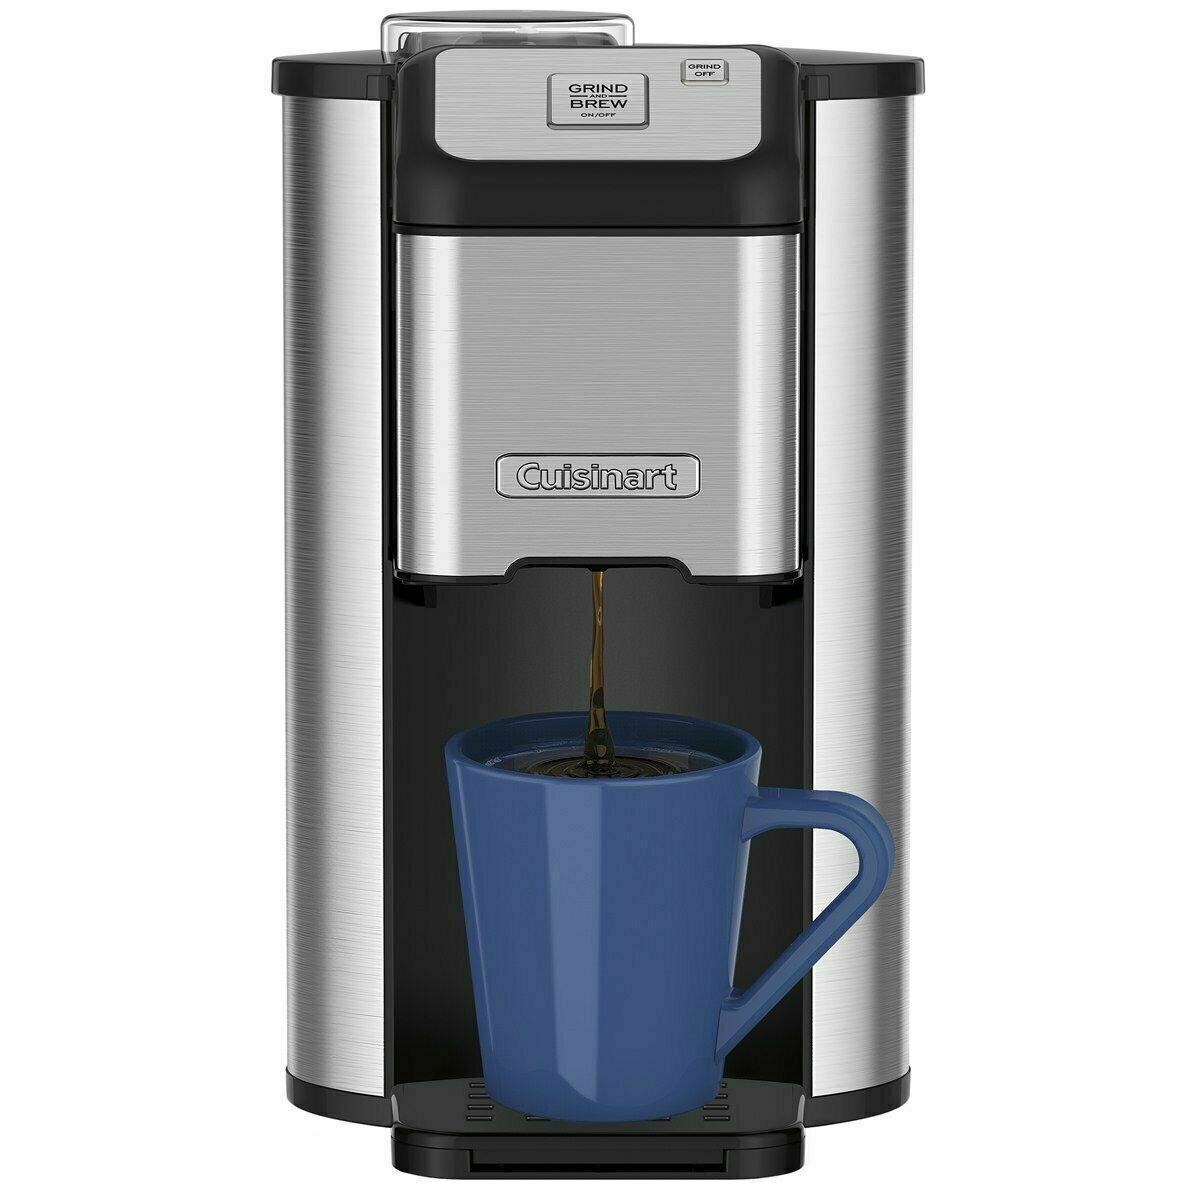 Cuisinart Single Cup Grind and Brew Coffee Maker w/ Filter   Reg Price: $90   Today's Price: $46 (48% off!)    via eBay